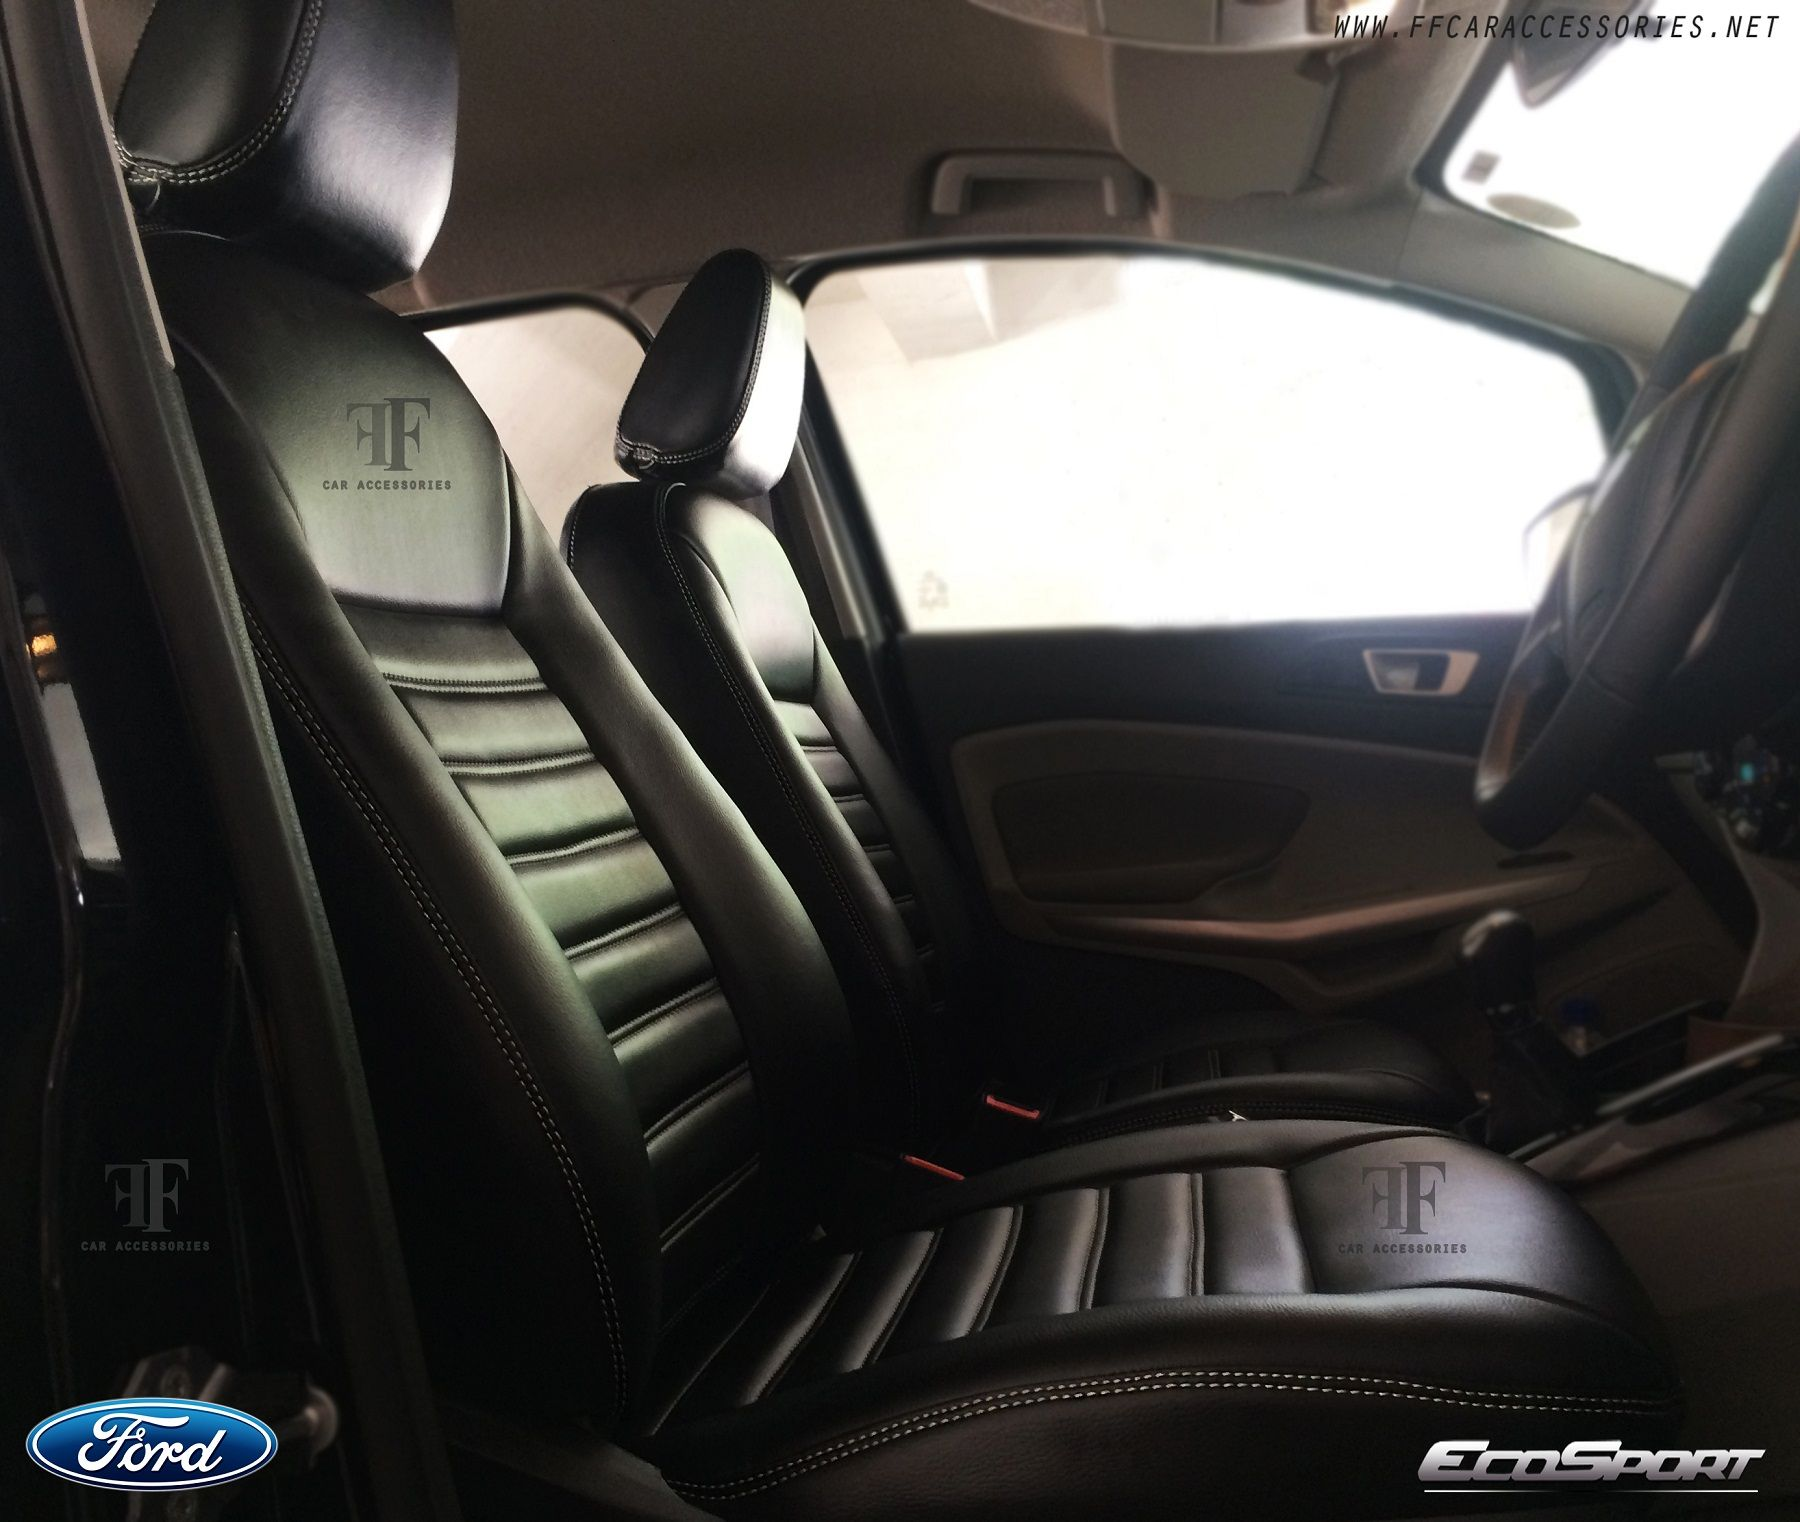 Ford ecosport seat cover with detailed white stitch by team ff car accessories chennai